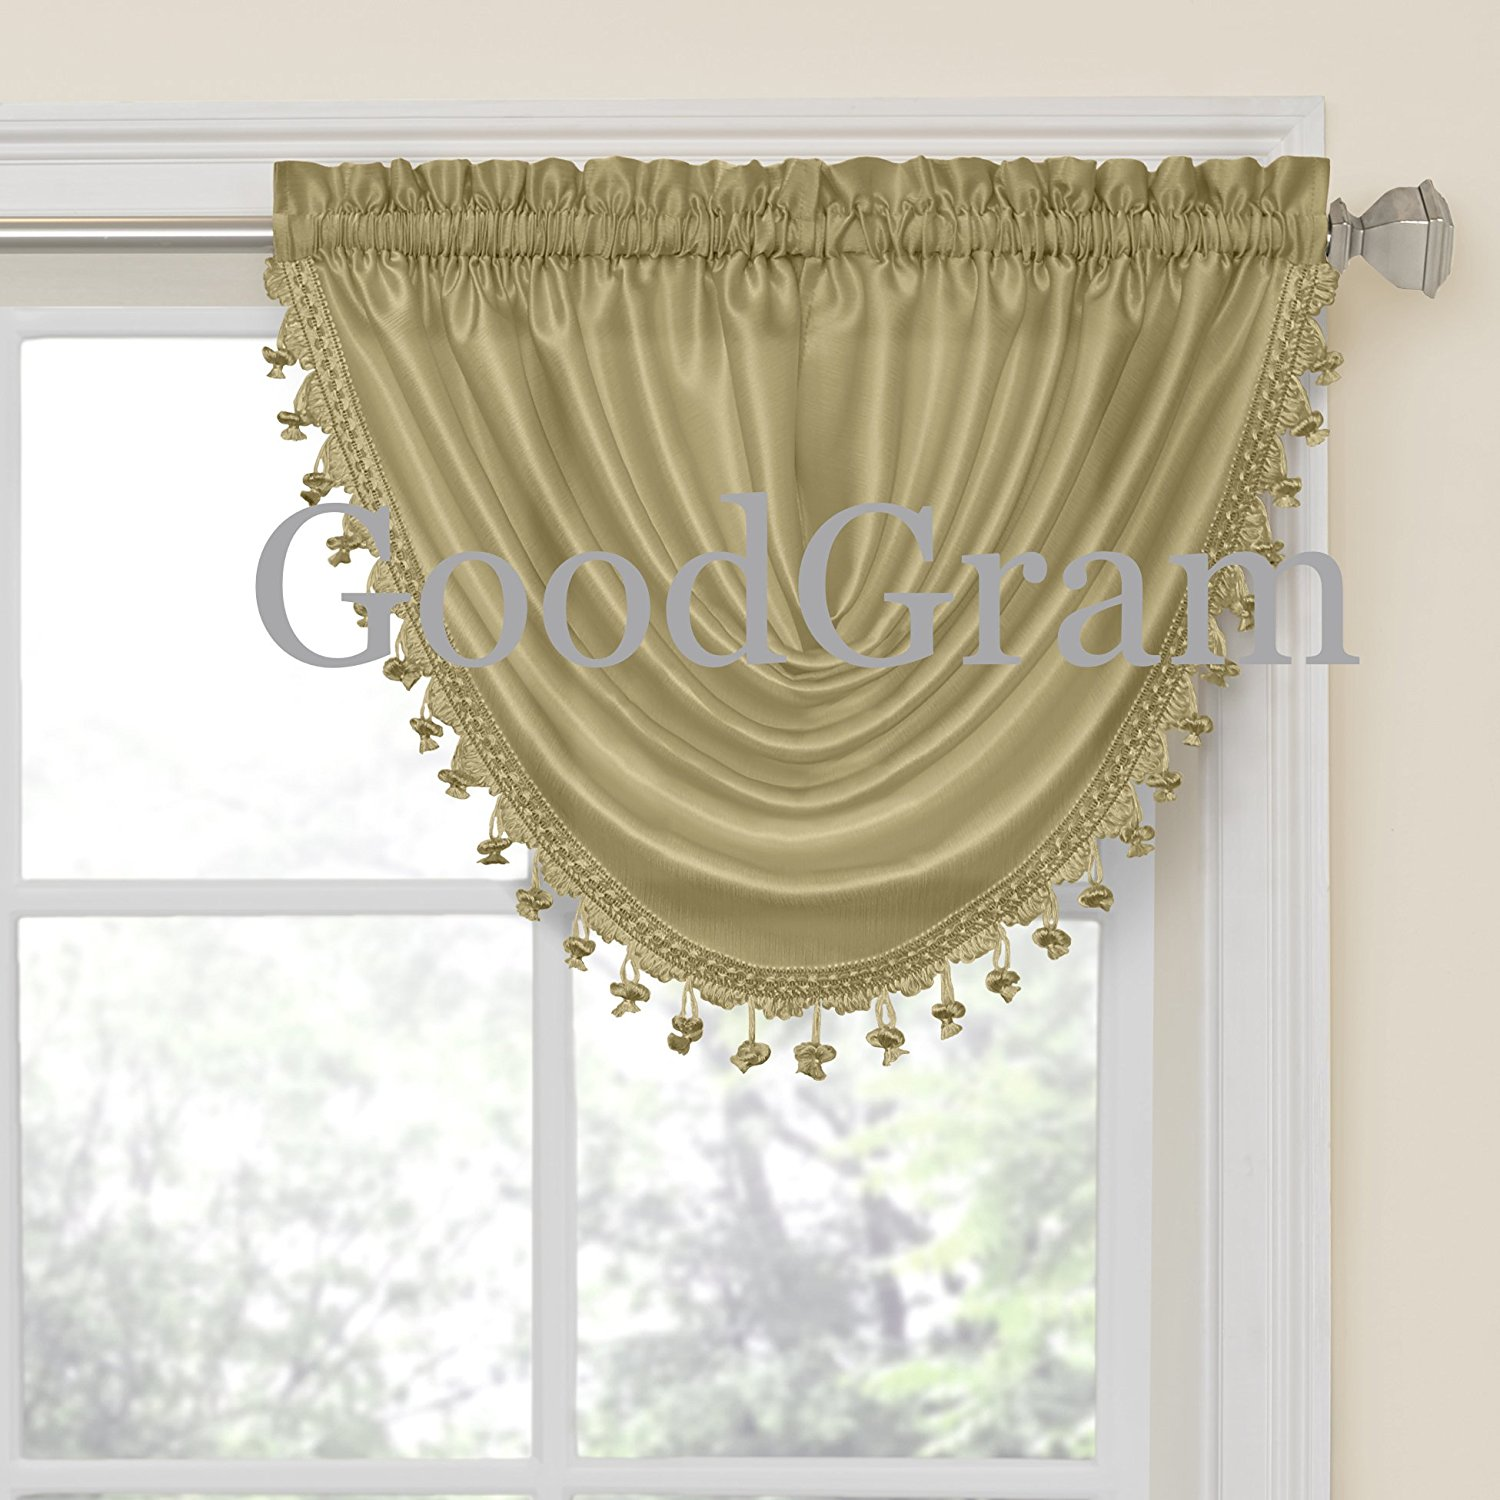 GoodGram Hyatt Ultra Luxurious Faux Silk Window Valance Treatments - Antique